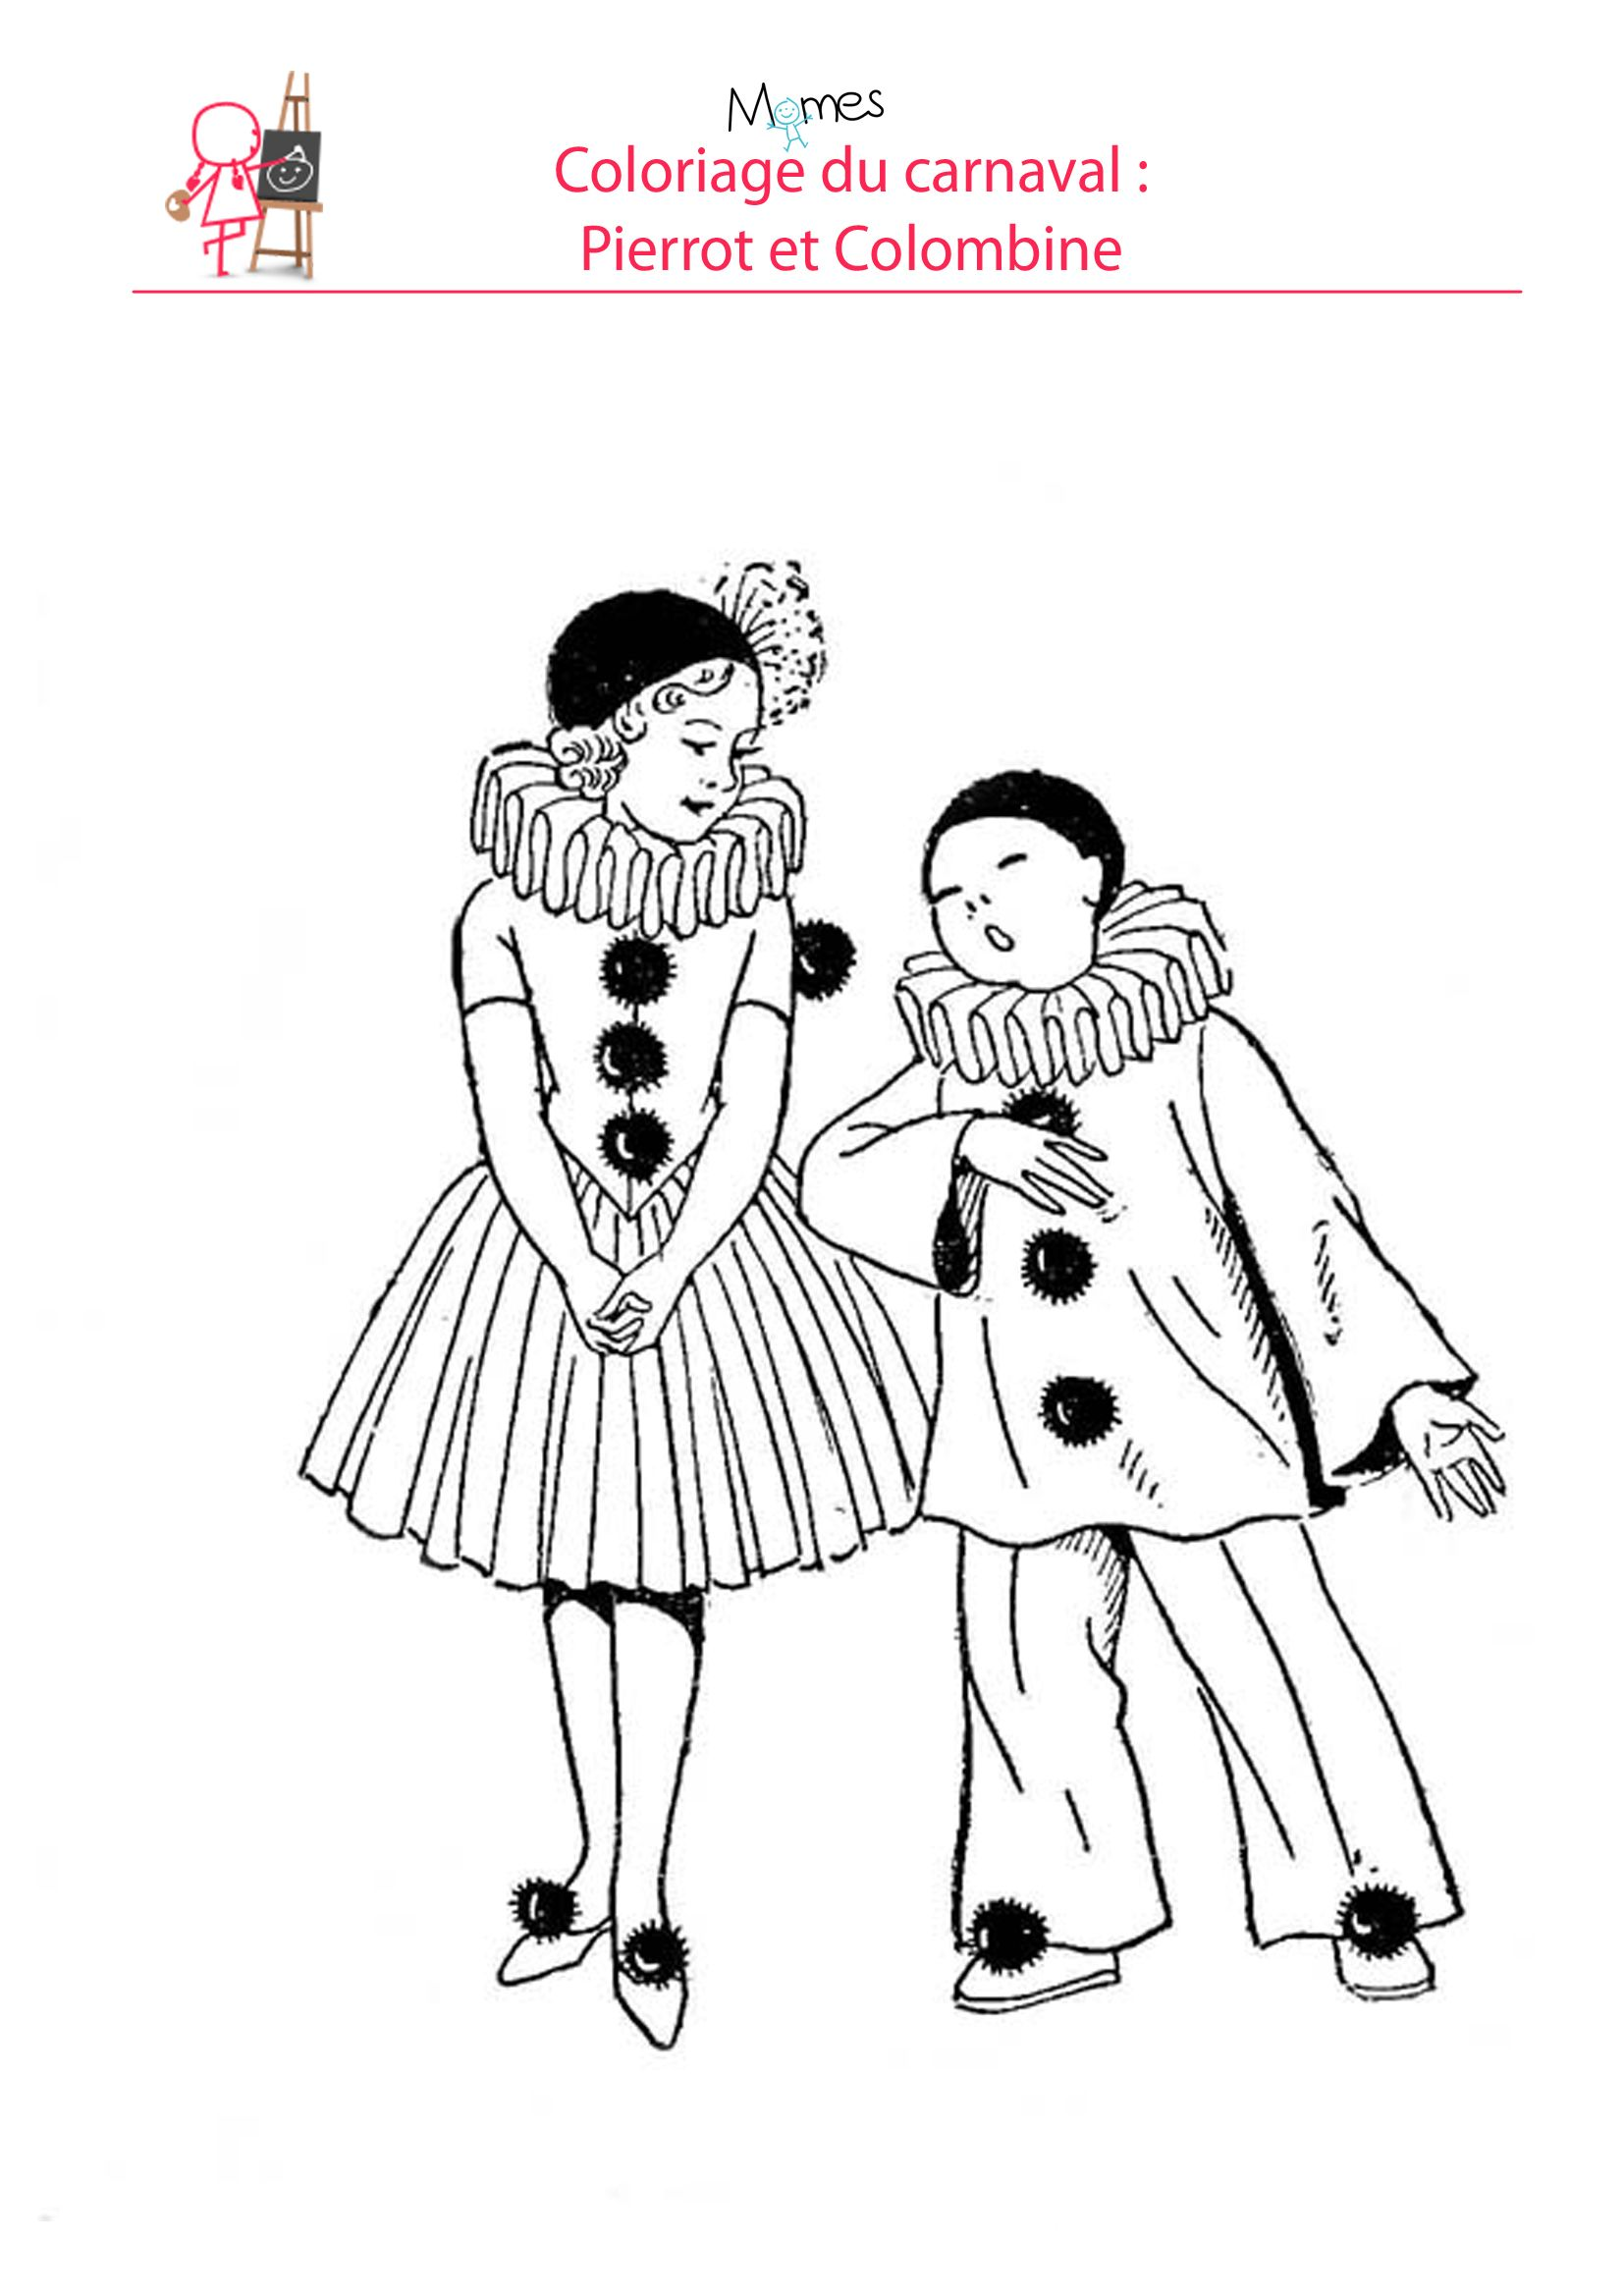 Coloriage Pierrot et Colombine